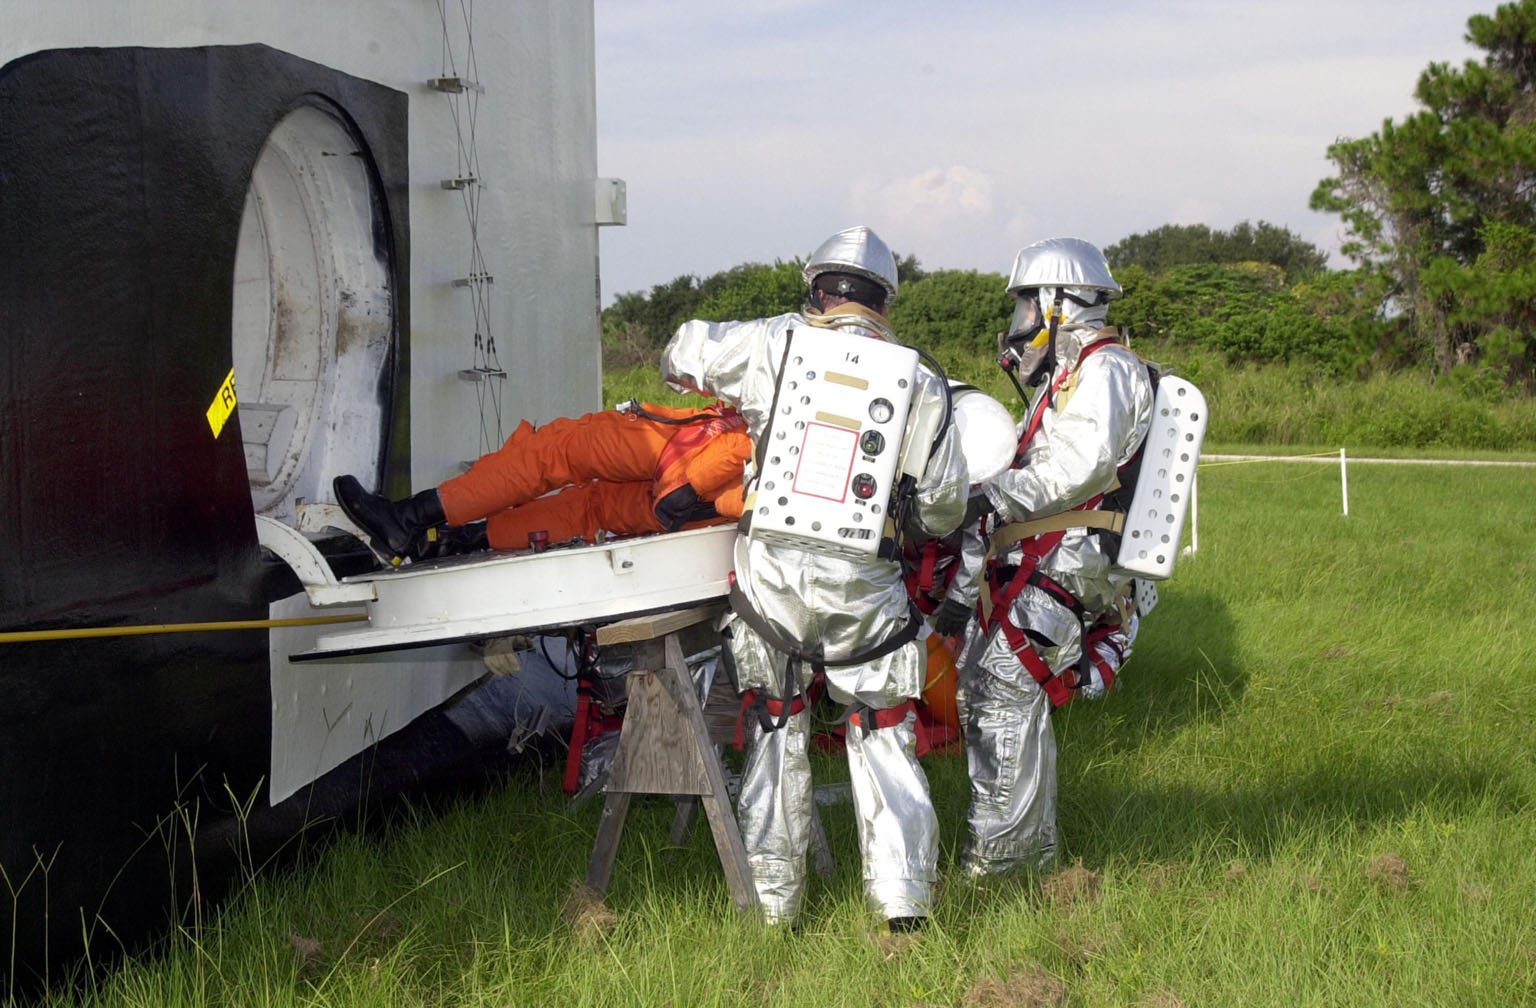 """KENNEDY SPACE CENTER, FLA. - """"Astronauts"""" were safely and successfully recovered from a """"downed"""" Space Shuttle in a Mode VII contingency simulation led by Don Hammel, NASA Landing and Recovery Director. KSC Fire/Rescue and Emergency Medical workers, along with Johnson Space Center and Patrick Air Force Base personnel, participated in the drill. Mode simulations are held periodically at KSC to ensure contingency response forces are well prepared to respond to a wide variety of potential emergency situations."""